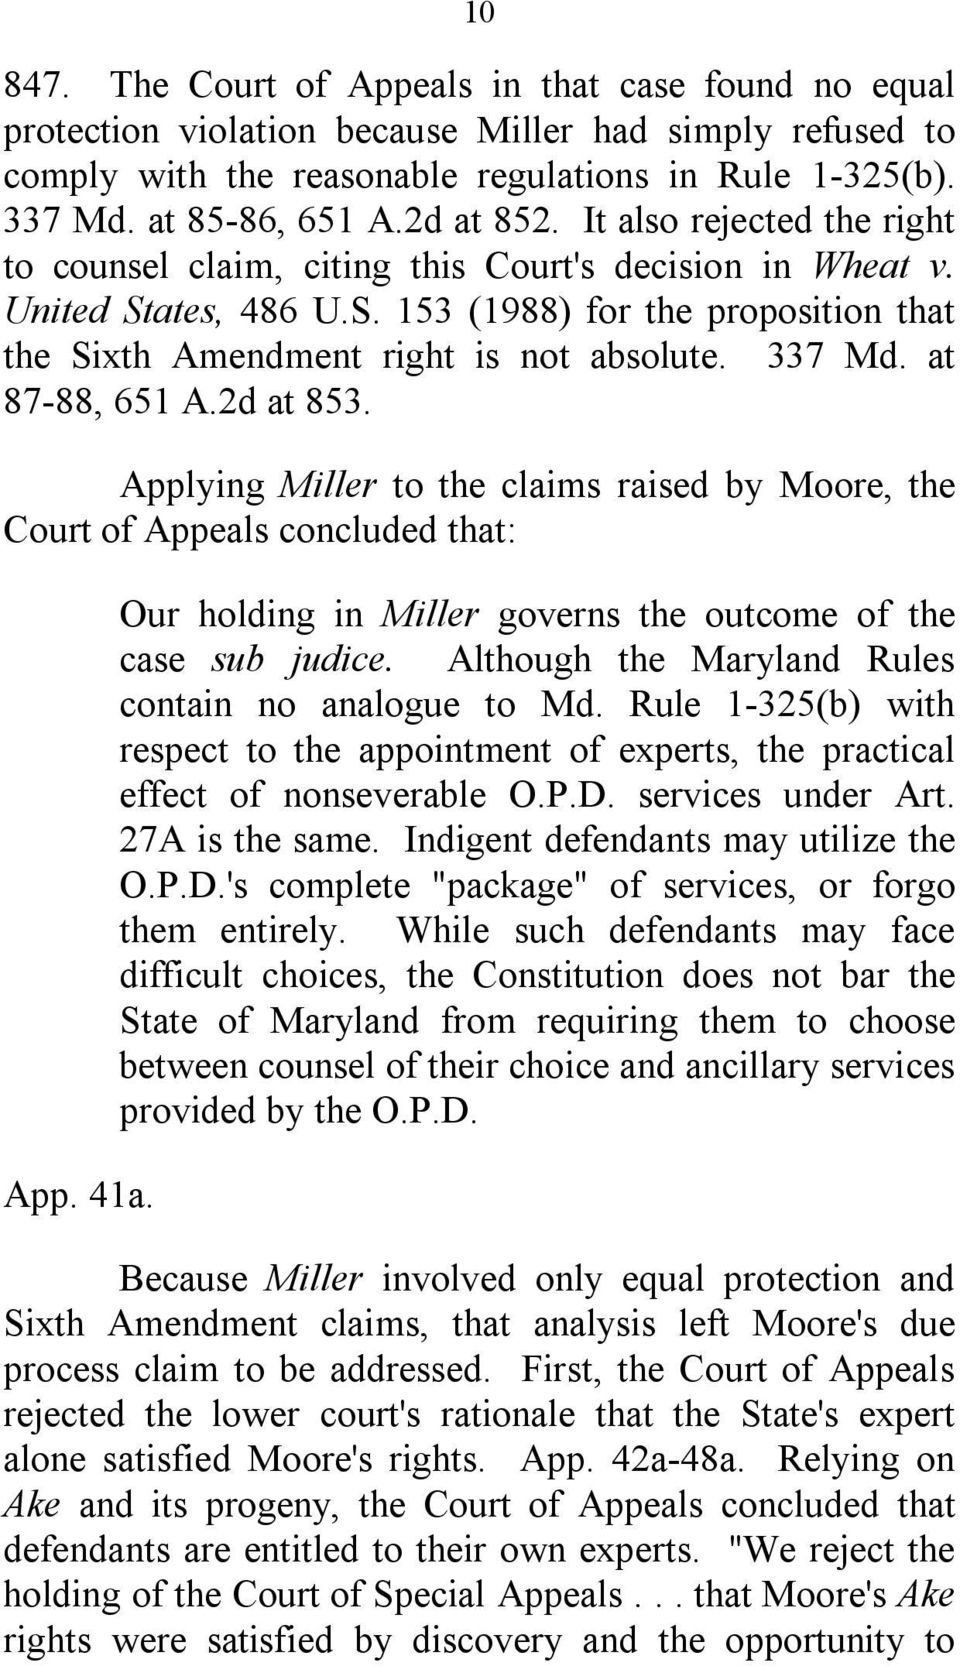 337 Md. at 87-88, 651 A.2d at 853. Applying Miller to the claims raised by Moore, the Court of Appeals concluded that: App. 41a. Our holding in Miller governs the outcome of the case sub judice.